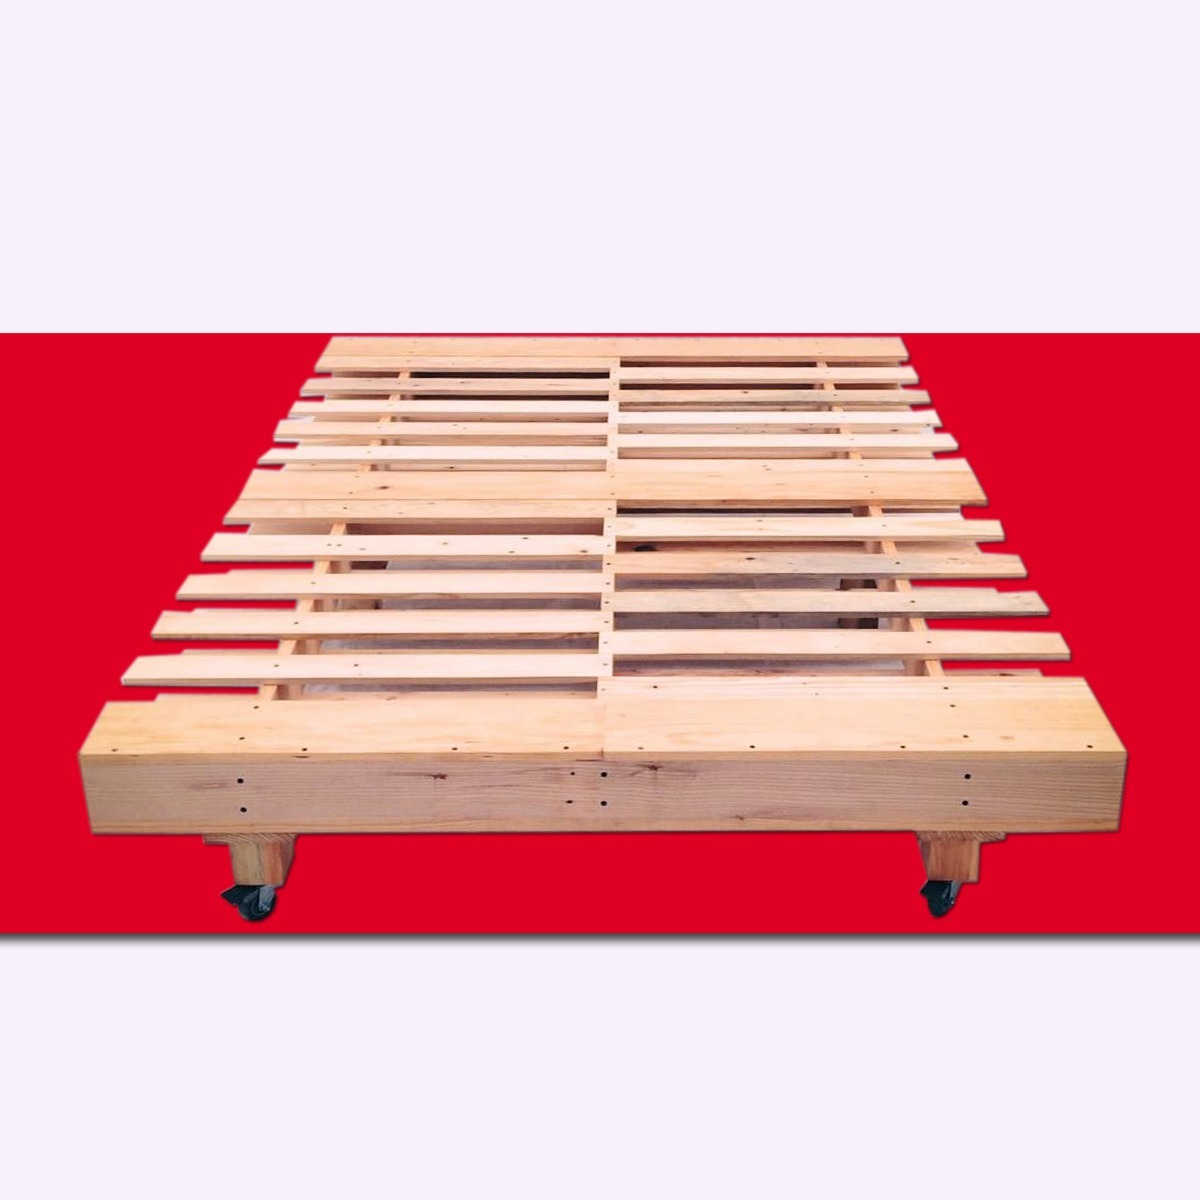 Base de cama queen size madera tarima sustentable for Cuanto cuesta una cama king size